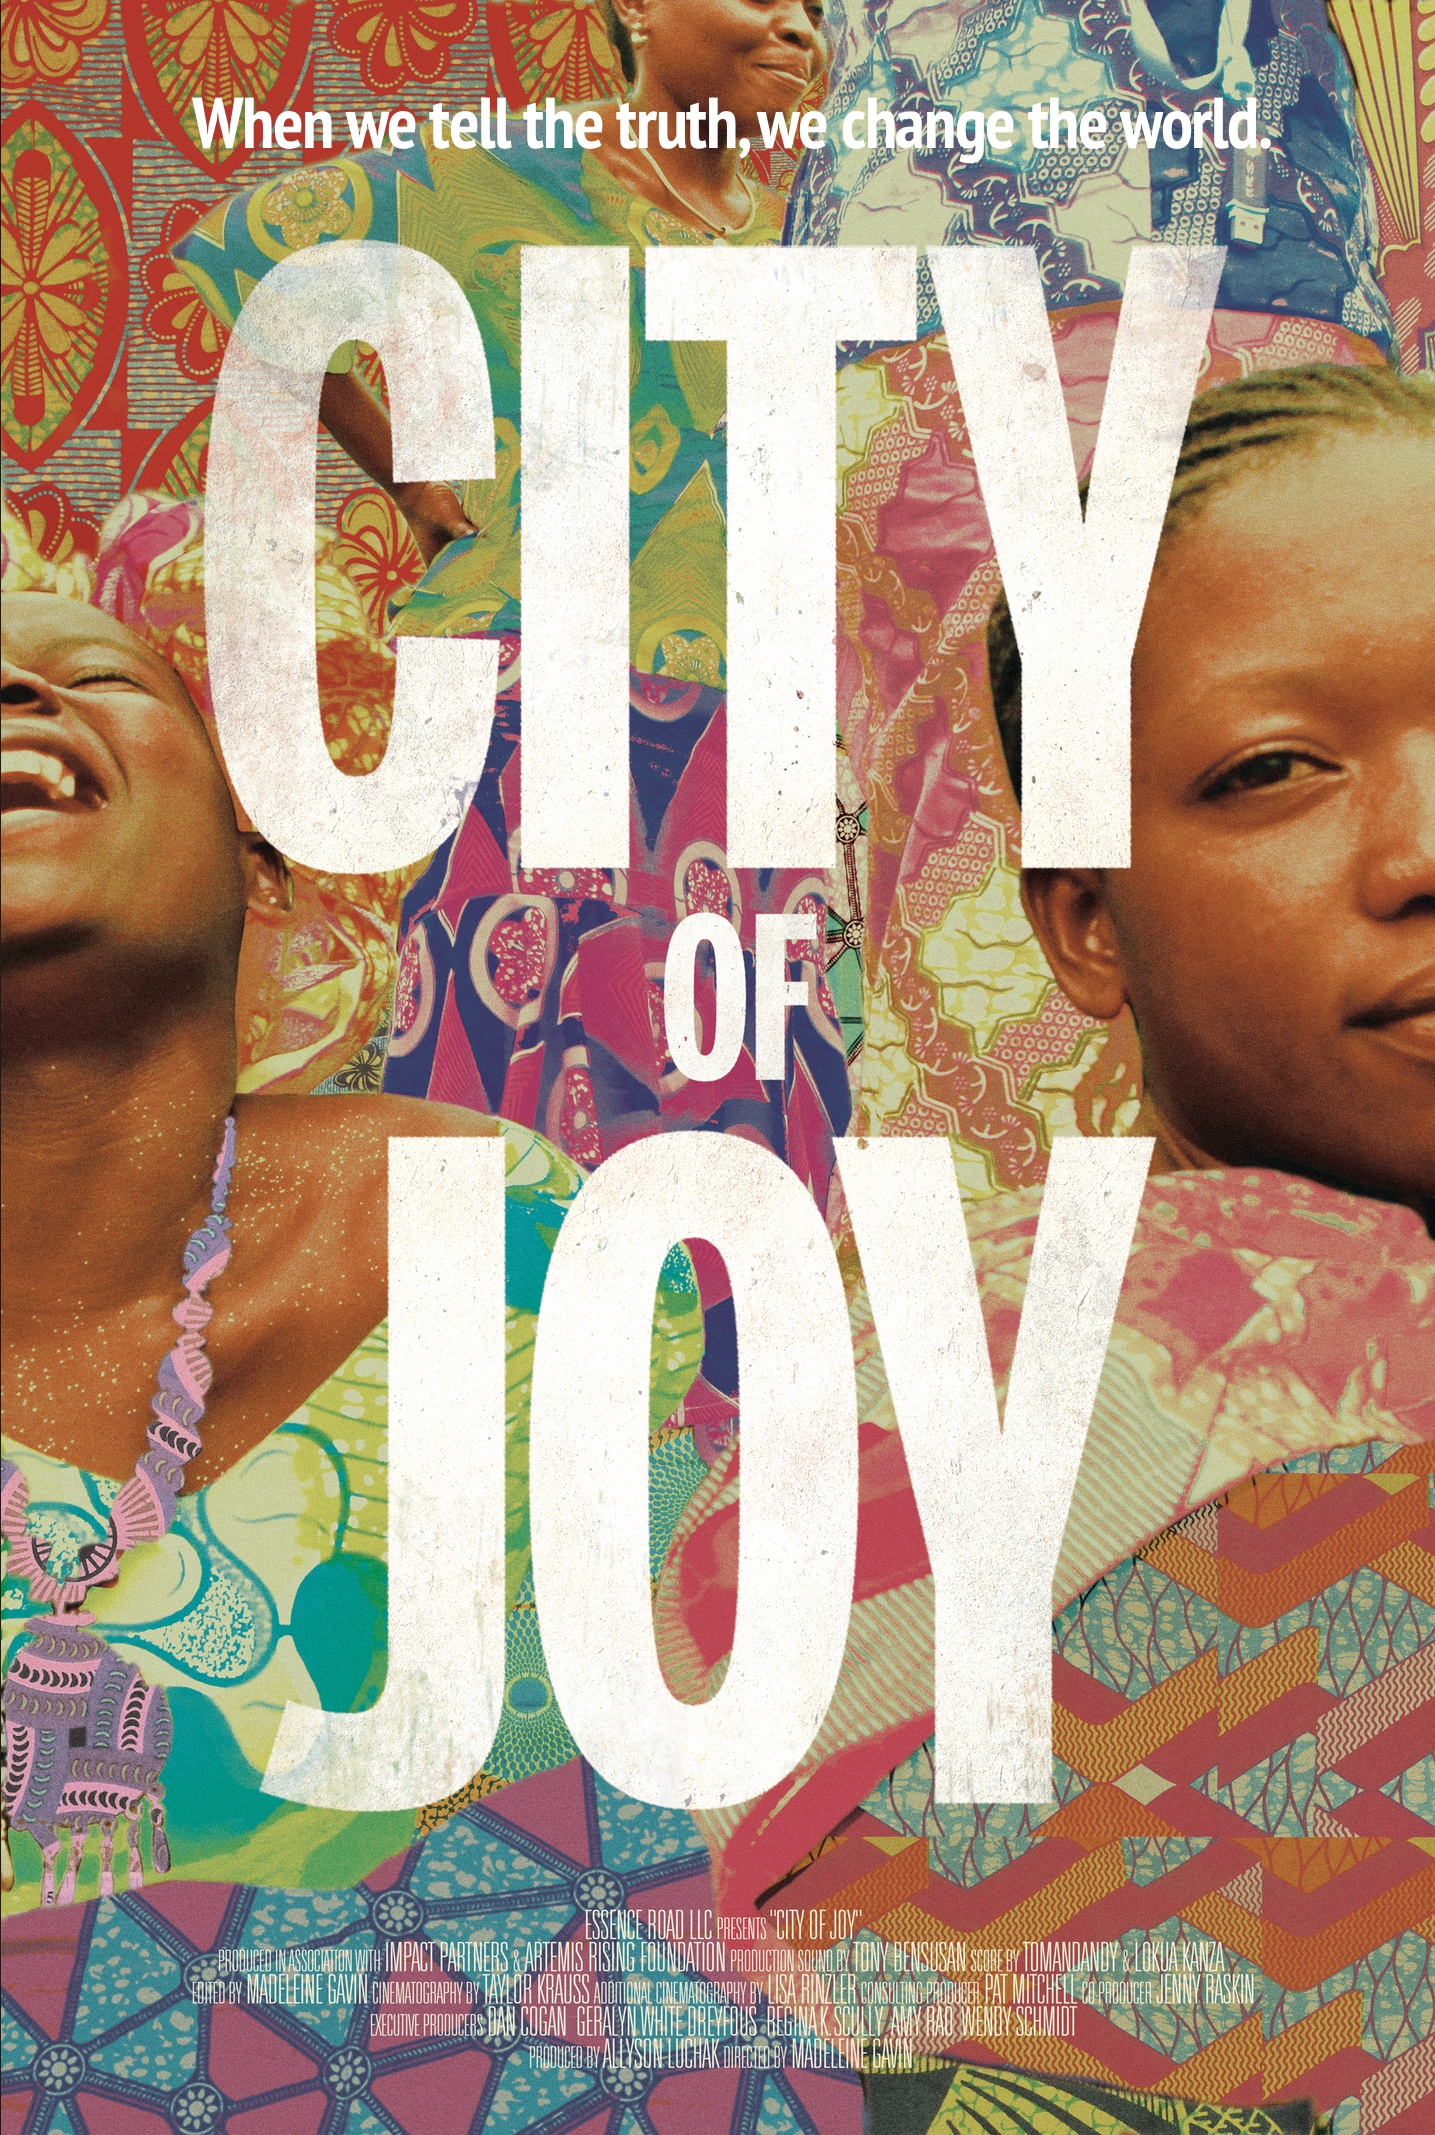 OBUDOC Screening: CITY OF JOY